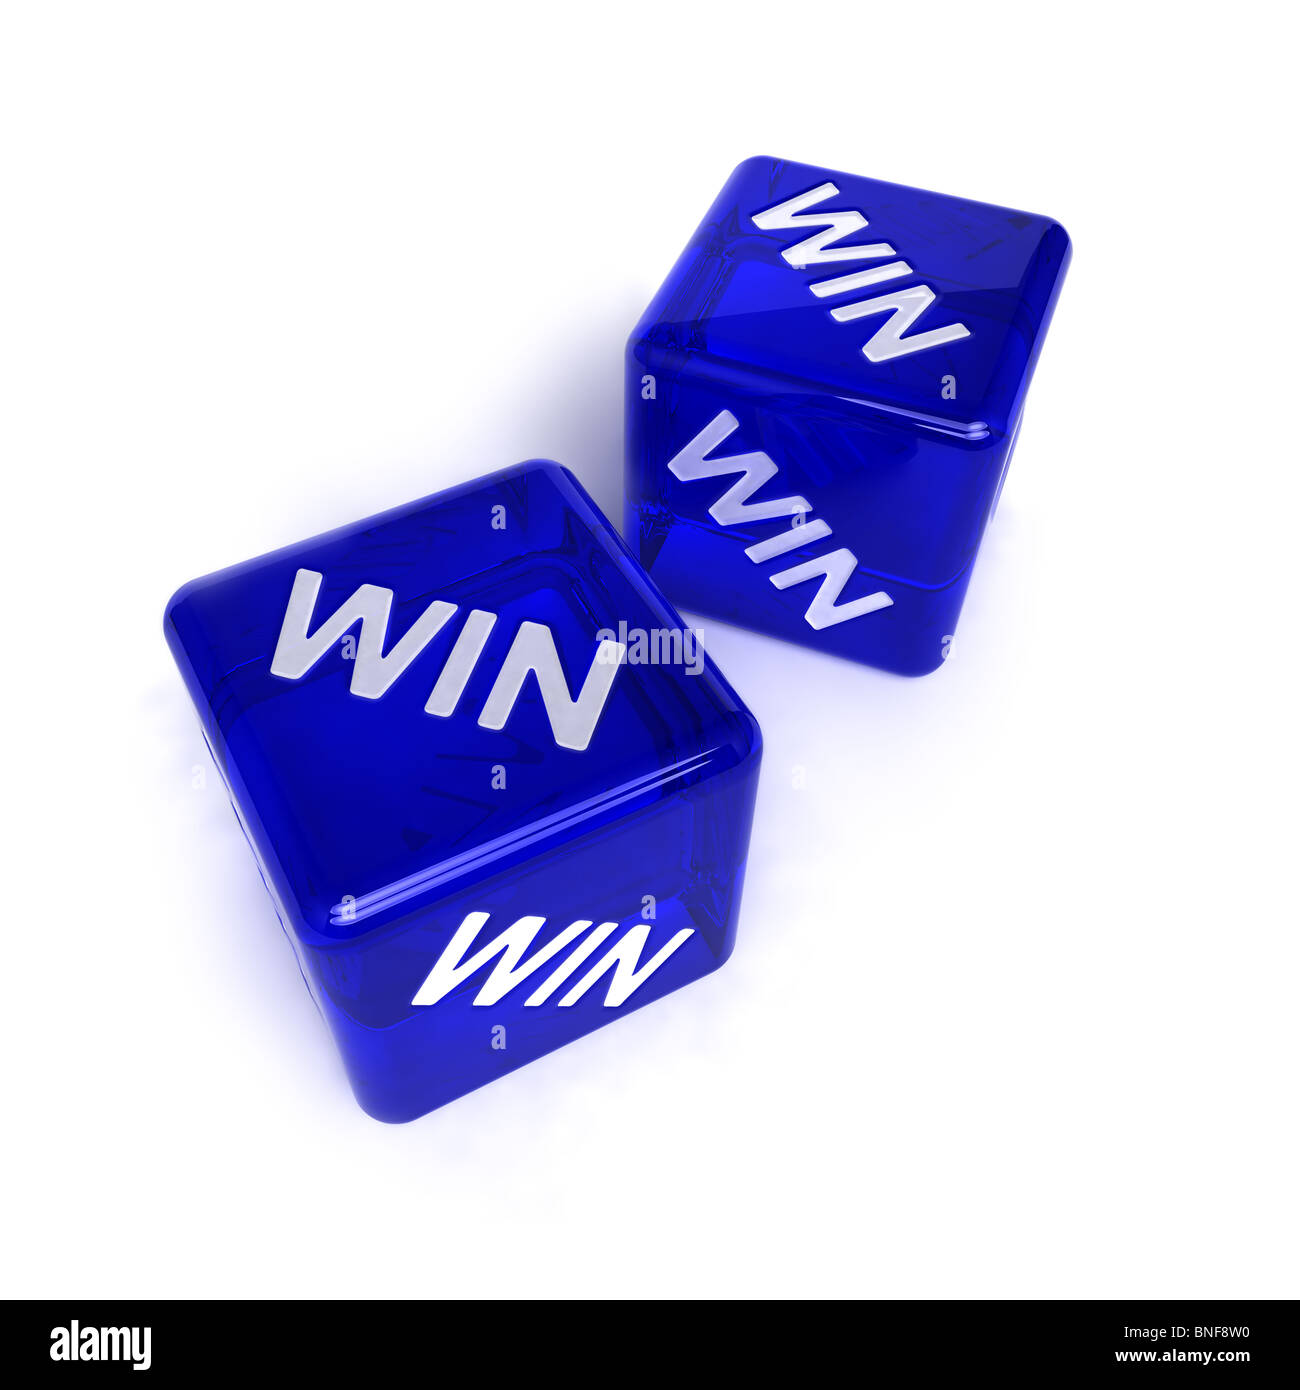 Two blue, semi-transparent dice with the word WIN on them - Stock Image